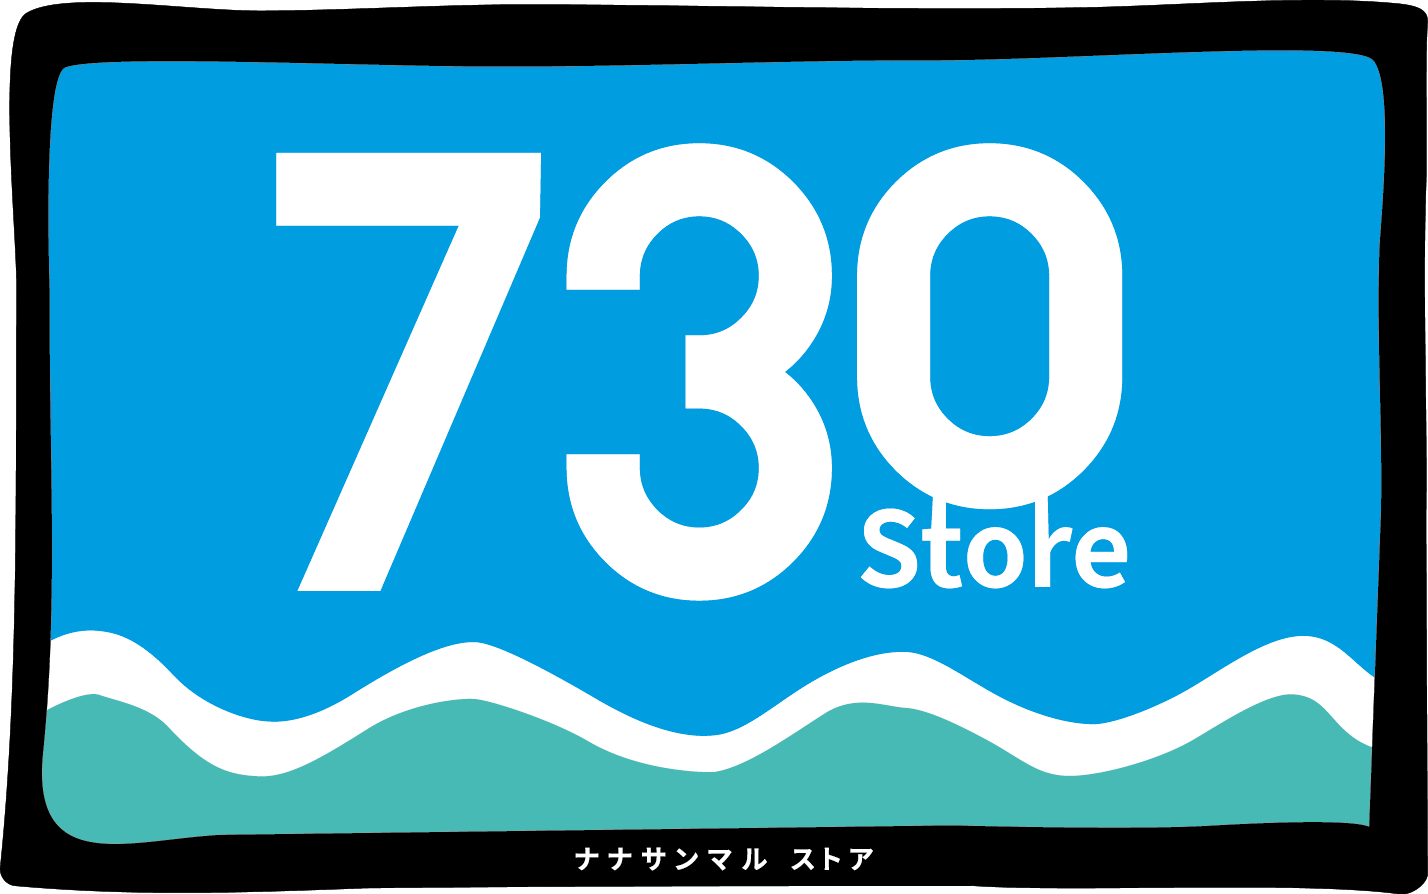 730 Store